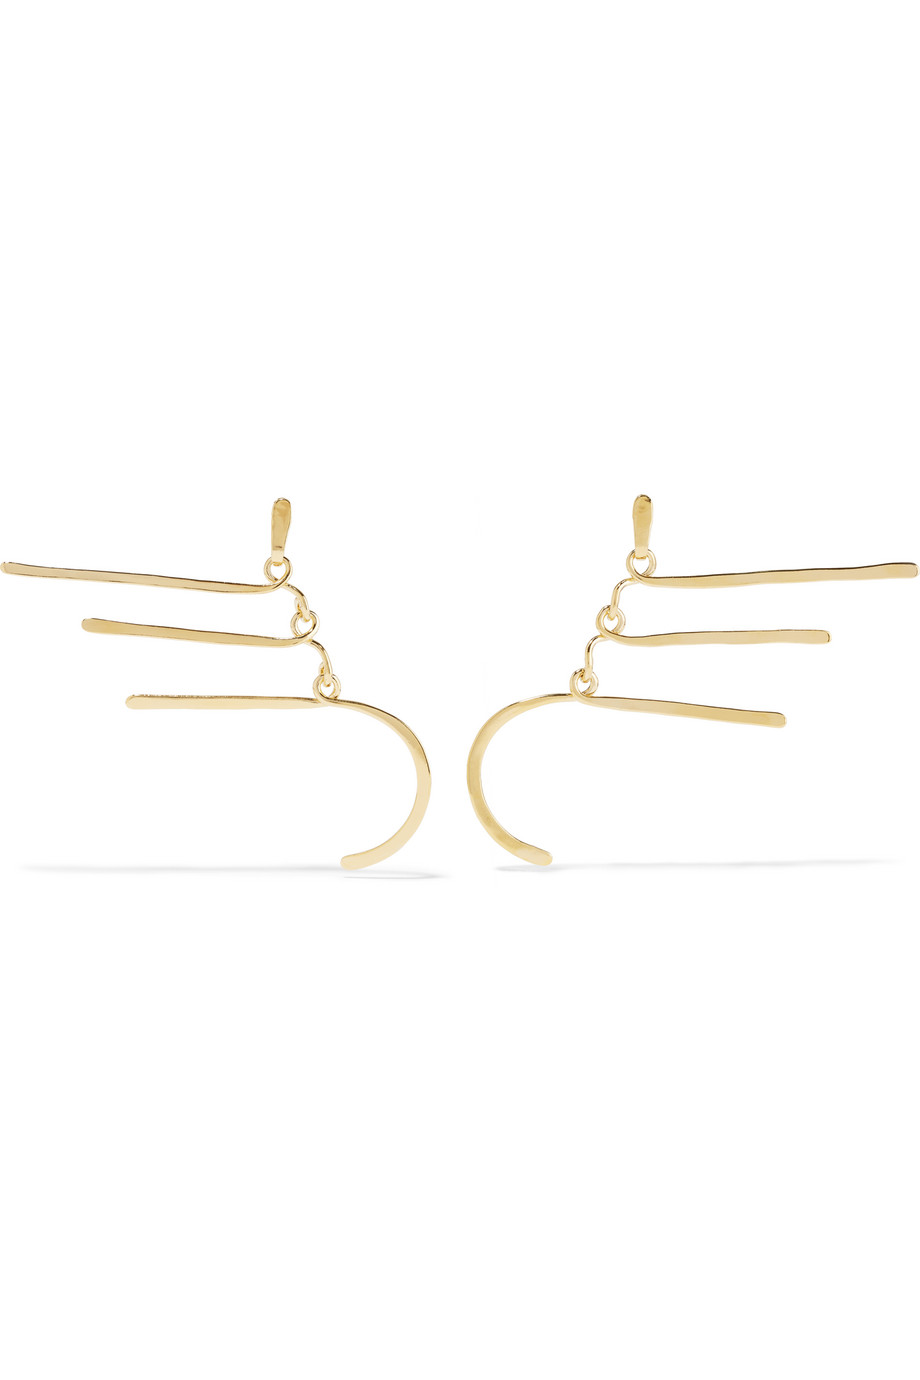 Vera Gold-Plated Earrings, Aurélie Bidermann, Women's